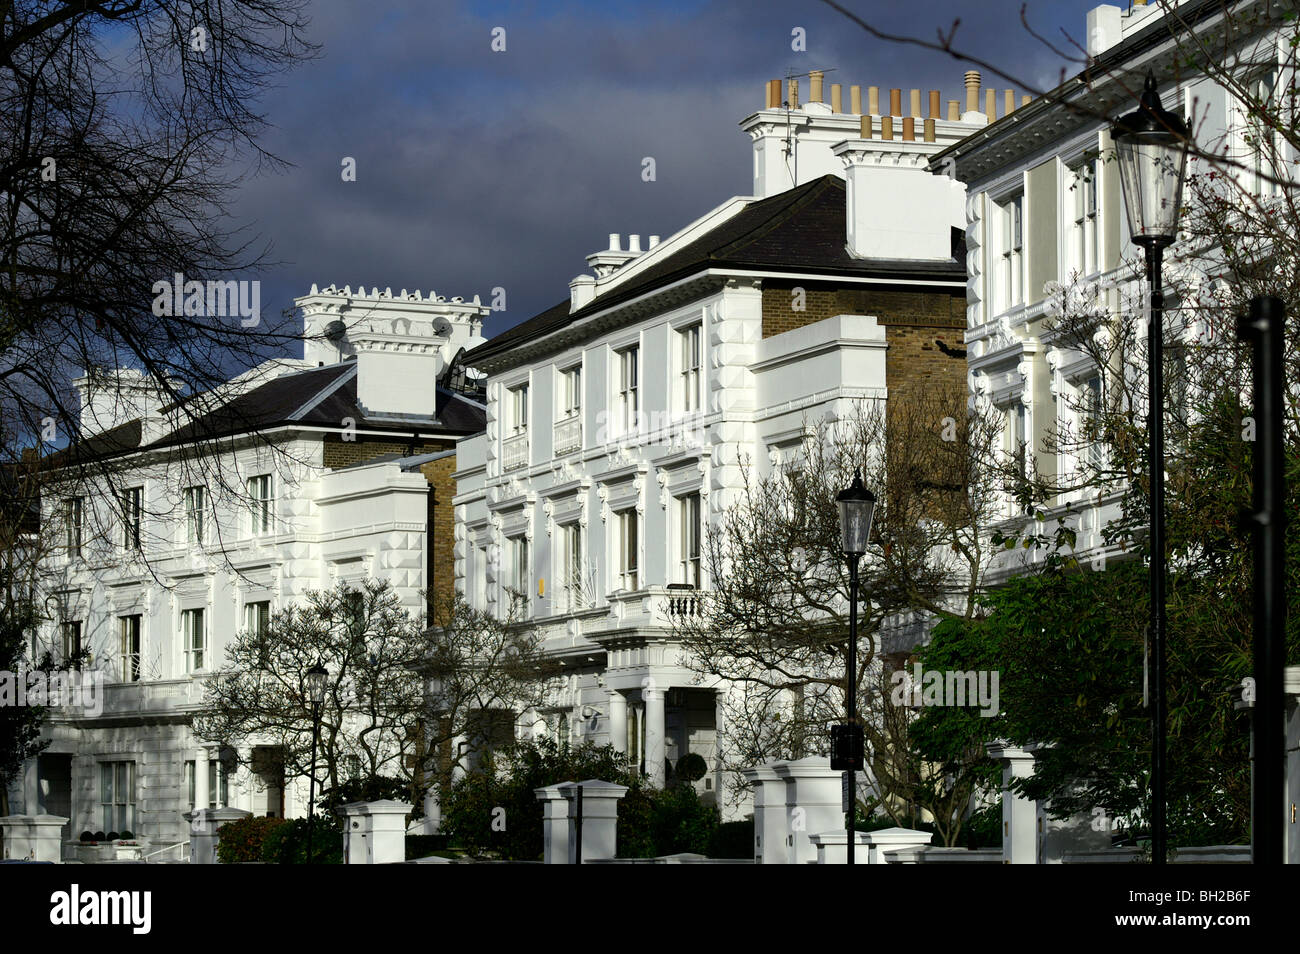 Rich and posh tenement house in the Chelsea, London - Stock Image